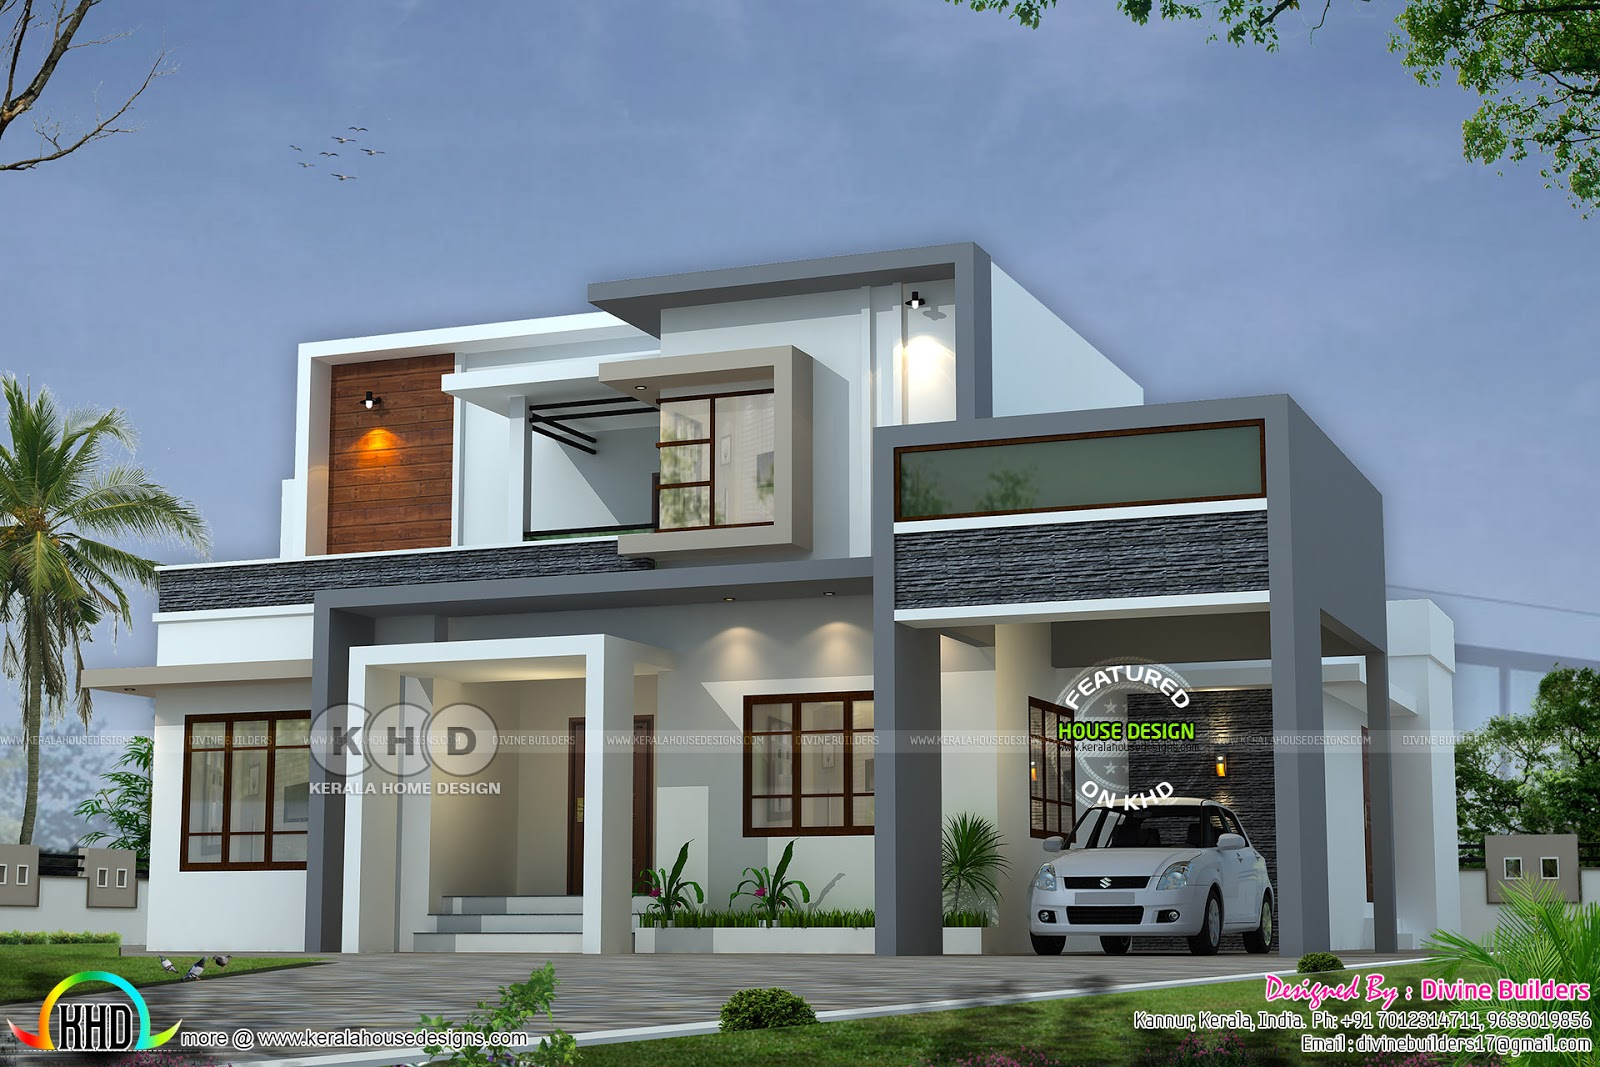 2017 kerala home design and floor plans for Home floor plans with estimated cost to build